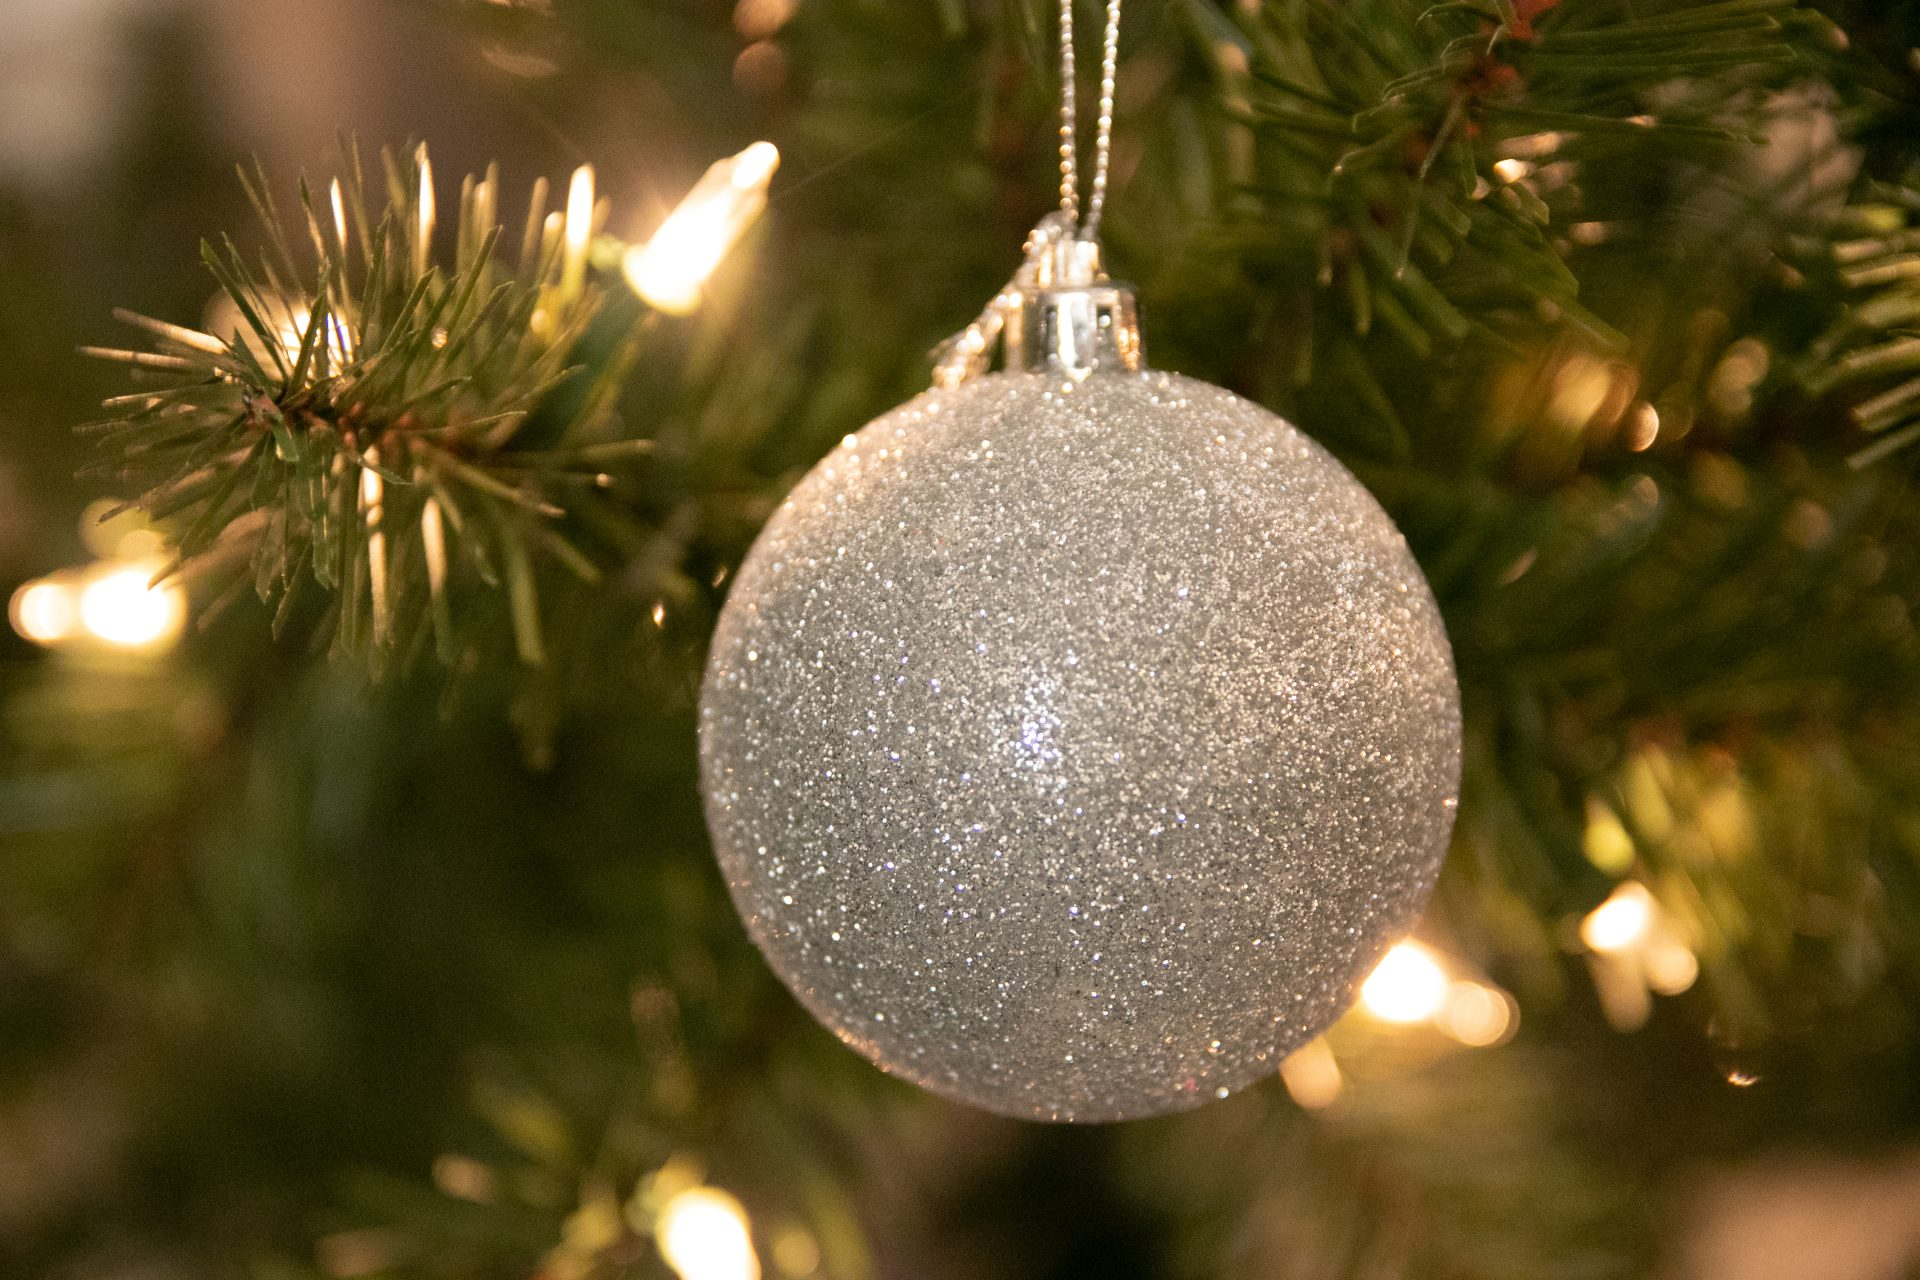 Close Up Of Glittery Bauble Ornament